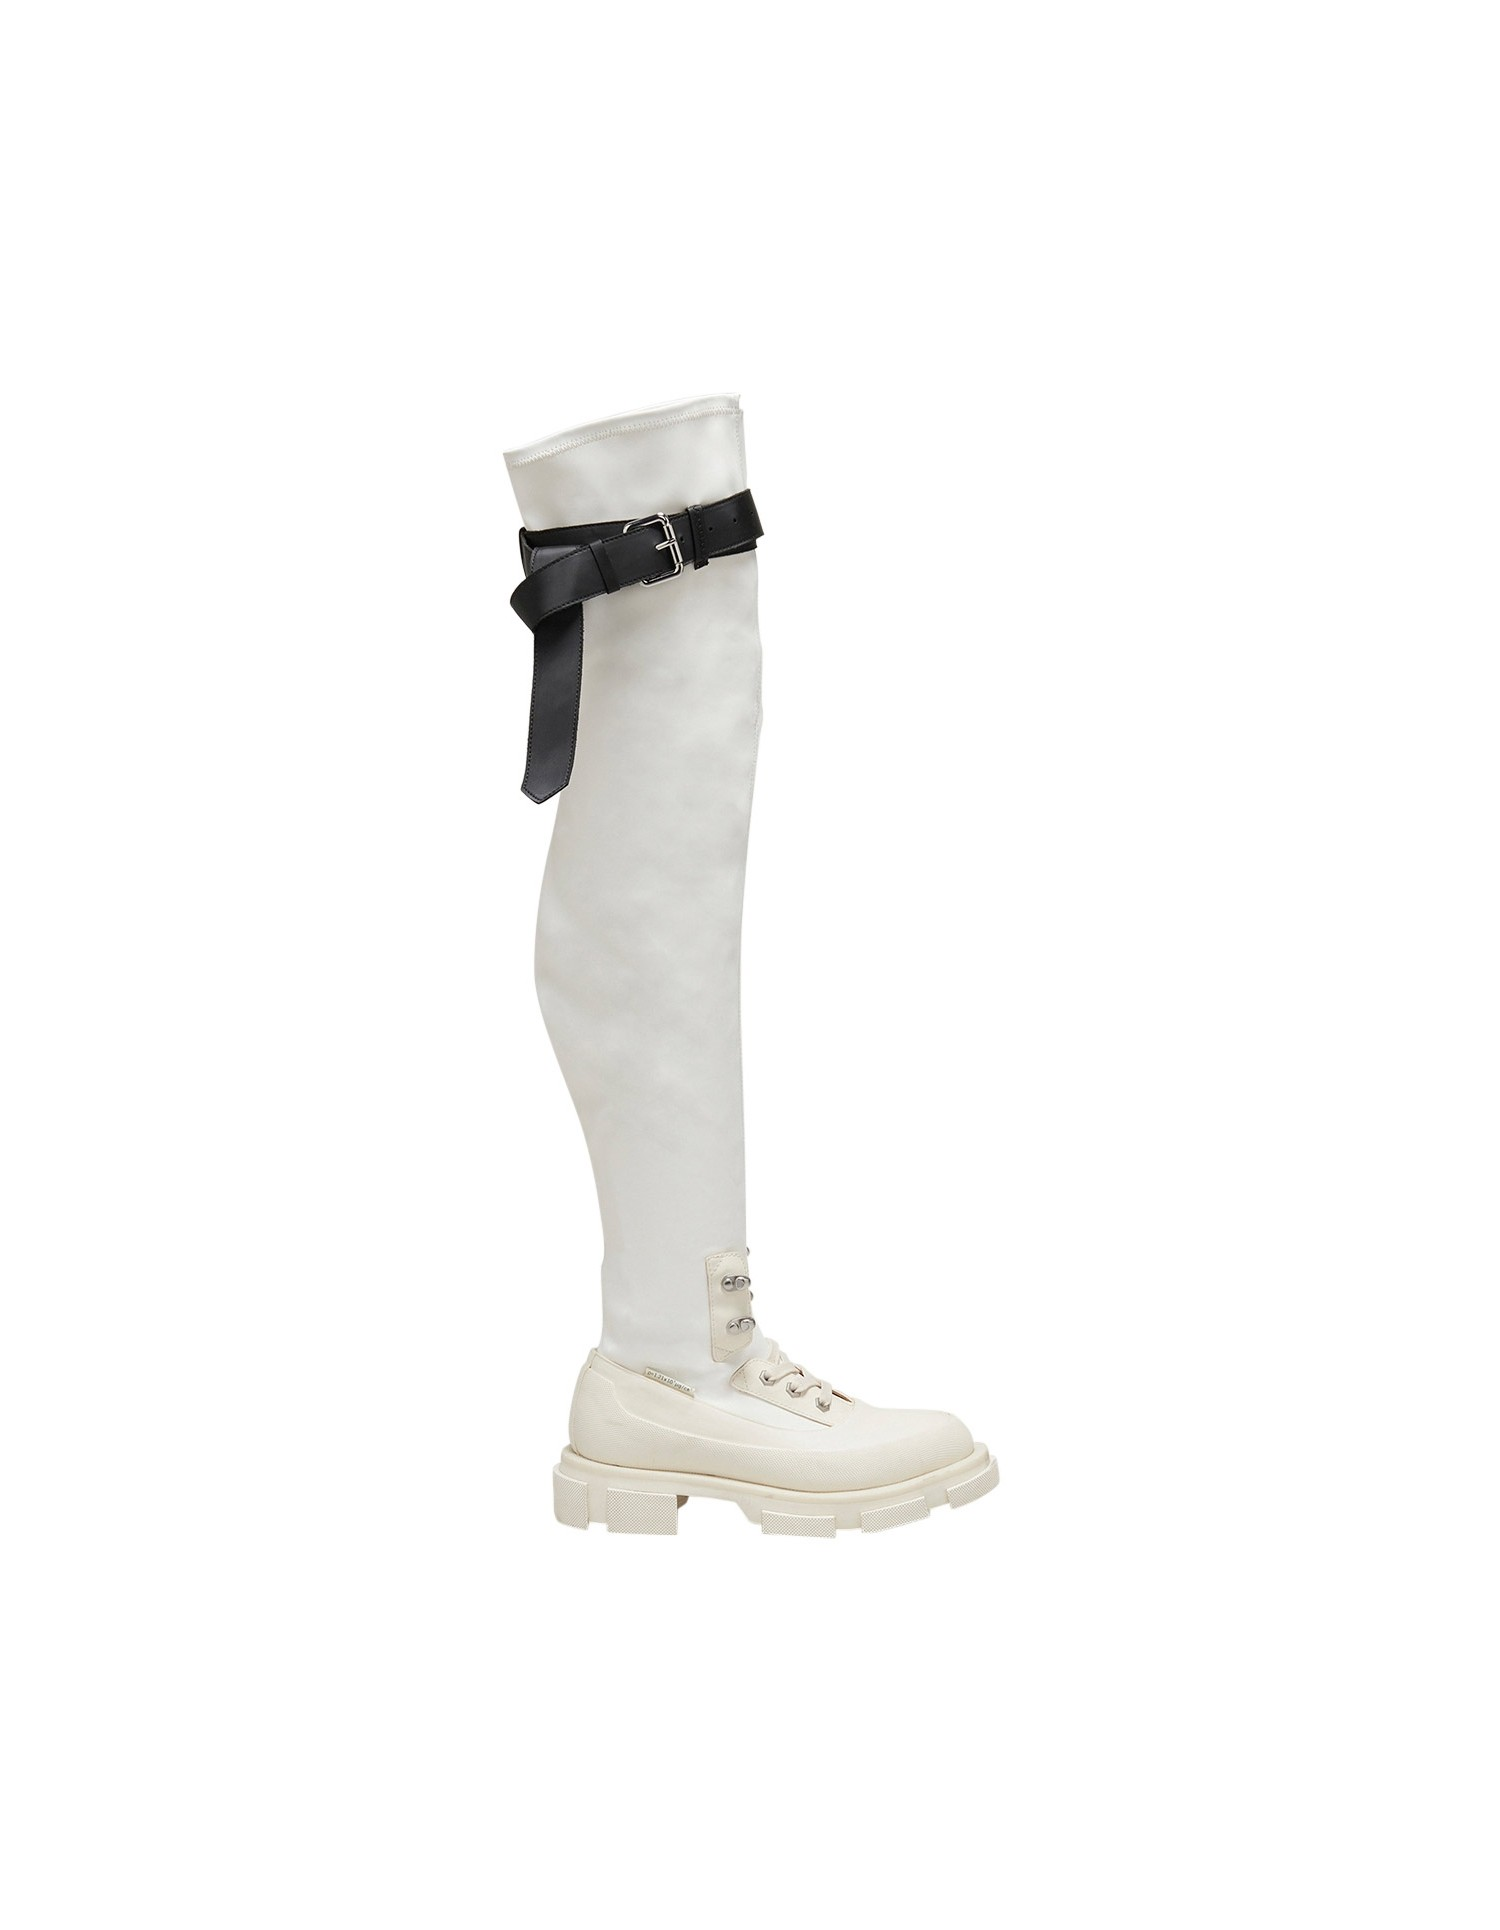 Both x MONSE Gao Thigh High Boots in White and Black Right Side Angle View